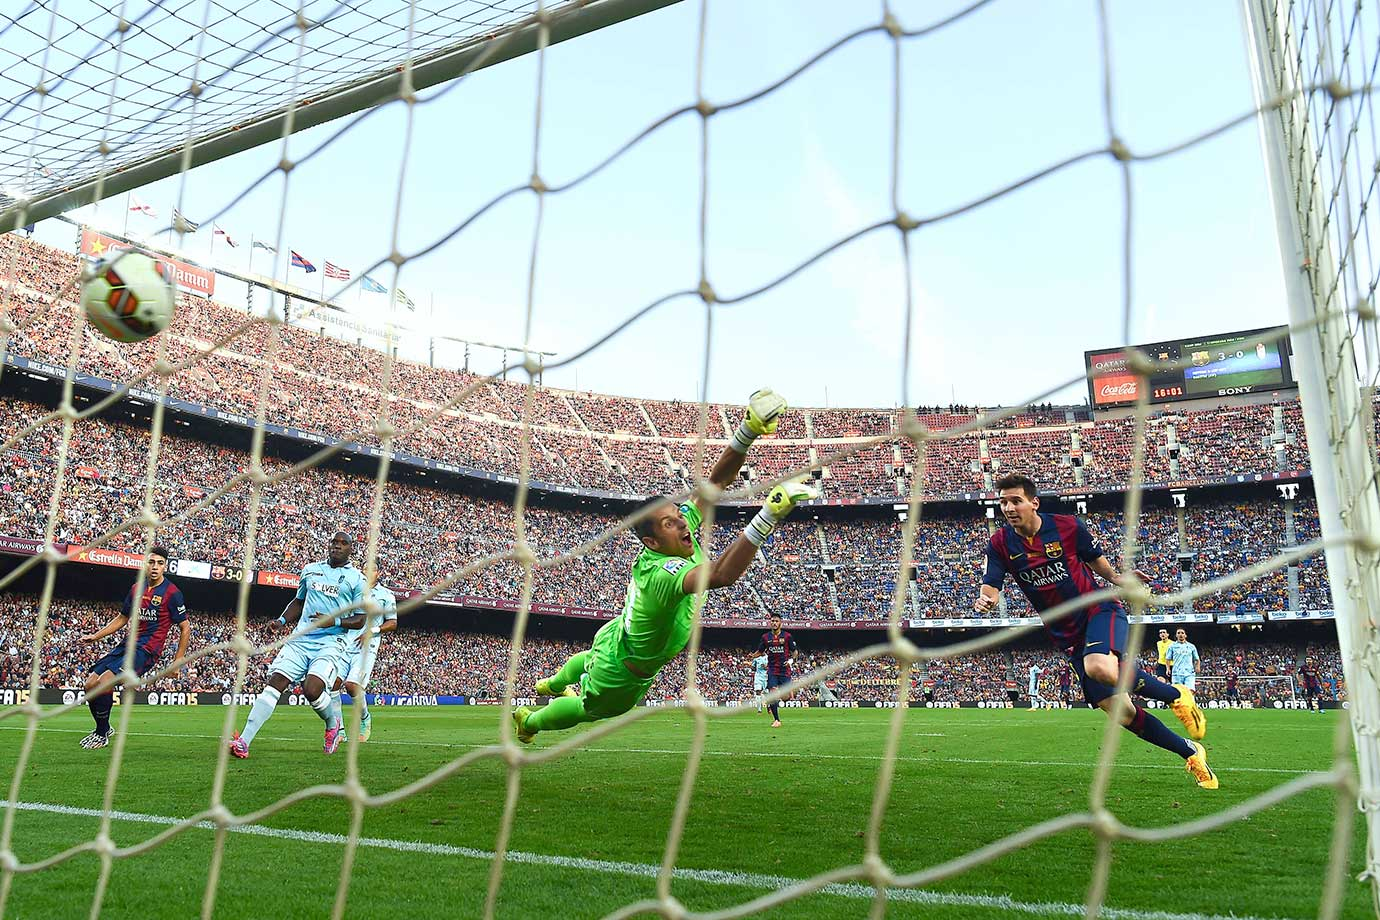 Barcelona's Lionel Messi scores his team's fourth goal during the La Liga match against Granada CF on Sept. 27, 2014 at Camp Nou stadium in Barcelona, Spain.